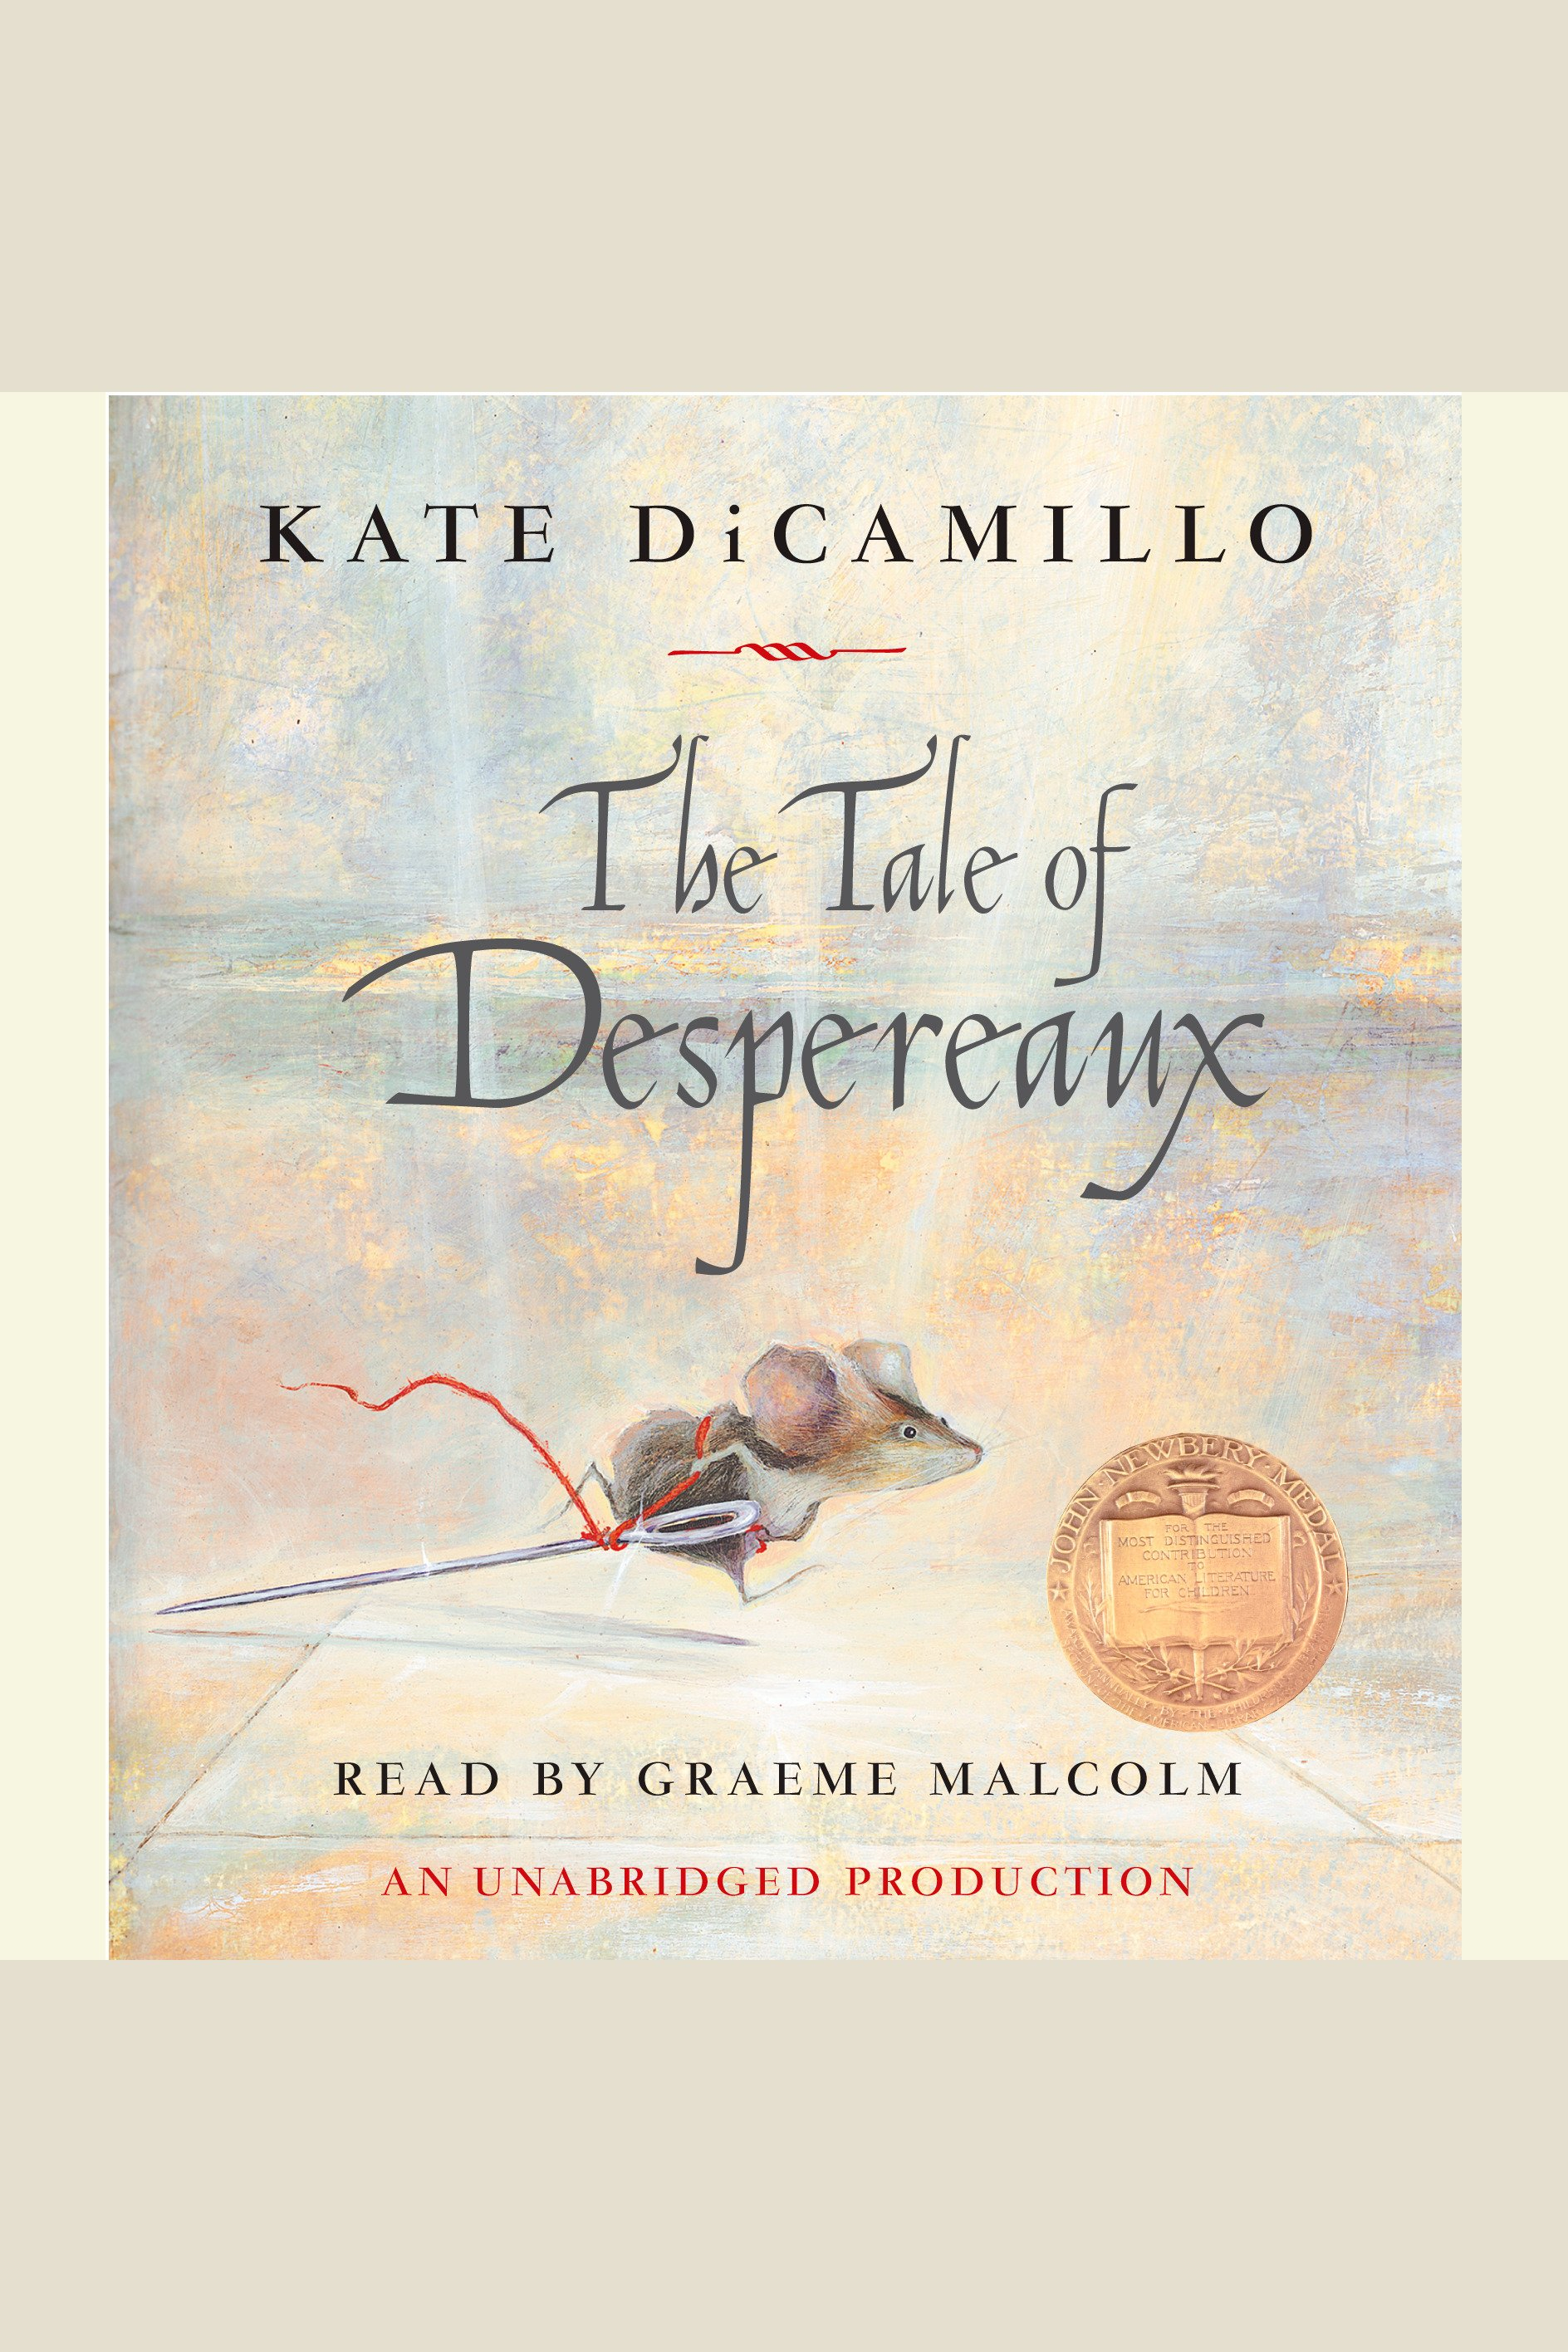 The tale of Despereaux being the story of a mouse, a princess, some soup, and a spool of thread cover image